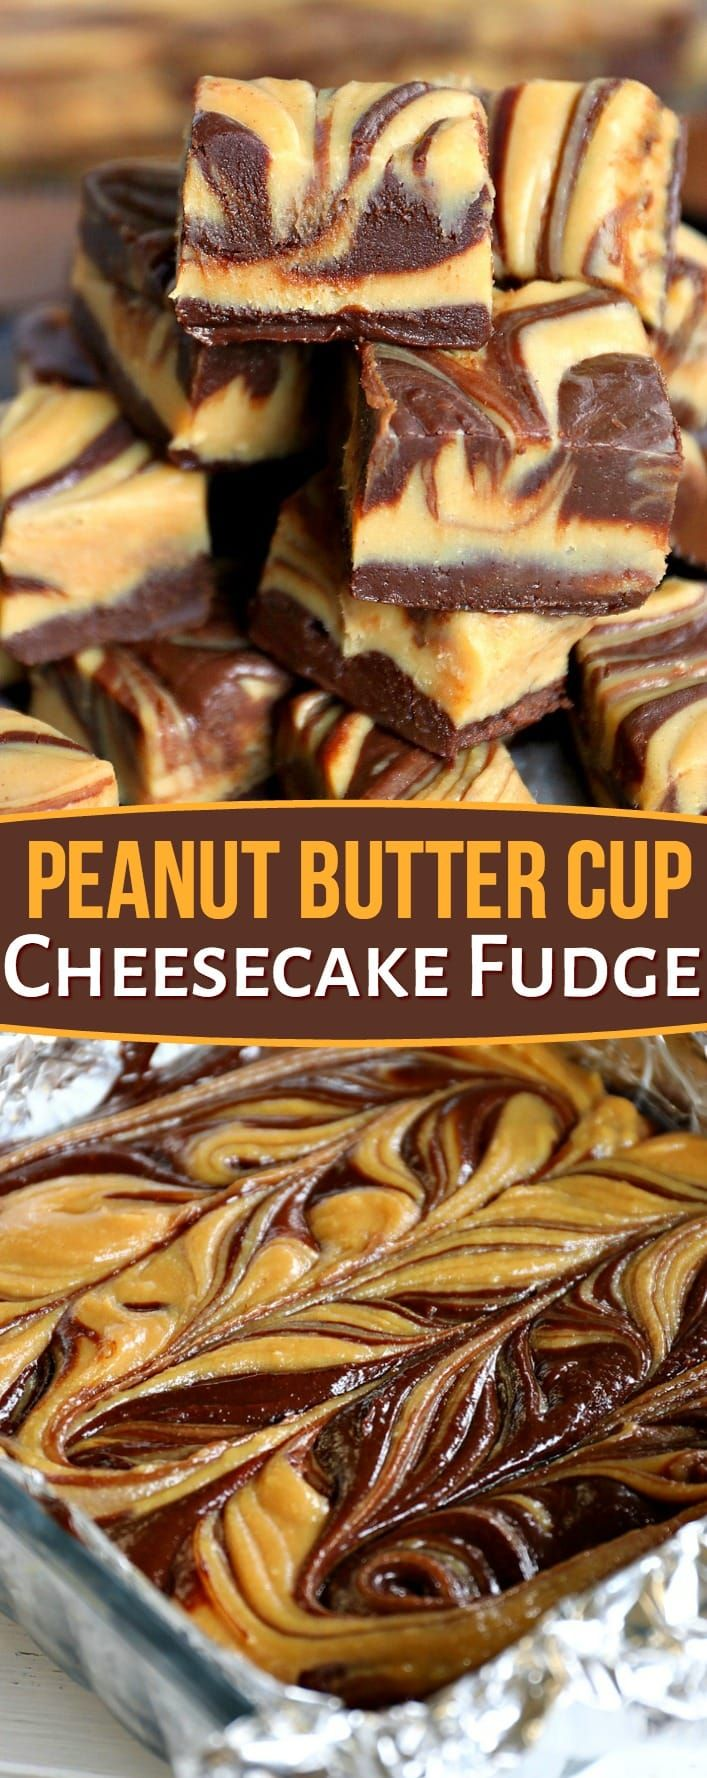 Prepare yourself for the most amazing fudge of your LIFE. This Peanut Butter Cup Cheesecake Fudge is extra creamy, extra decadent, and the perfect addition to any festivities. Share with a chocolate and peanut butter lover today! // Mom On Timeout #peanutbutter #chocolate #cheesecake #Fudge #Christmas #candy #recipe #recipes #sponsored #sweets #treats #Reeses #nobake